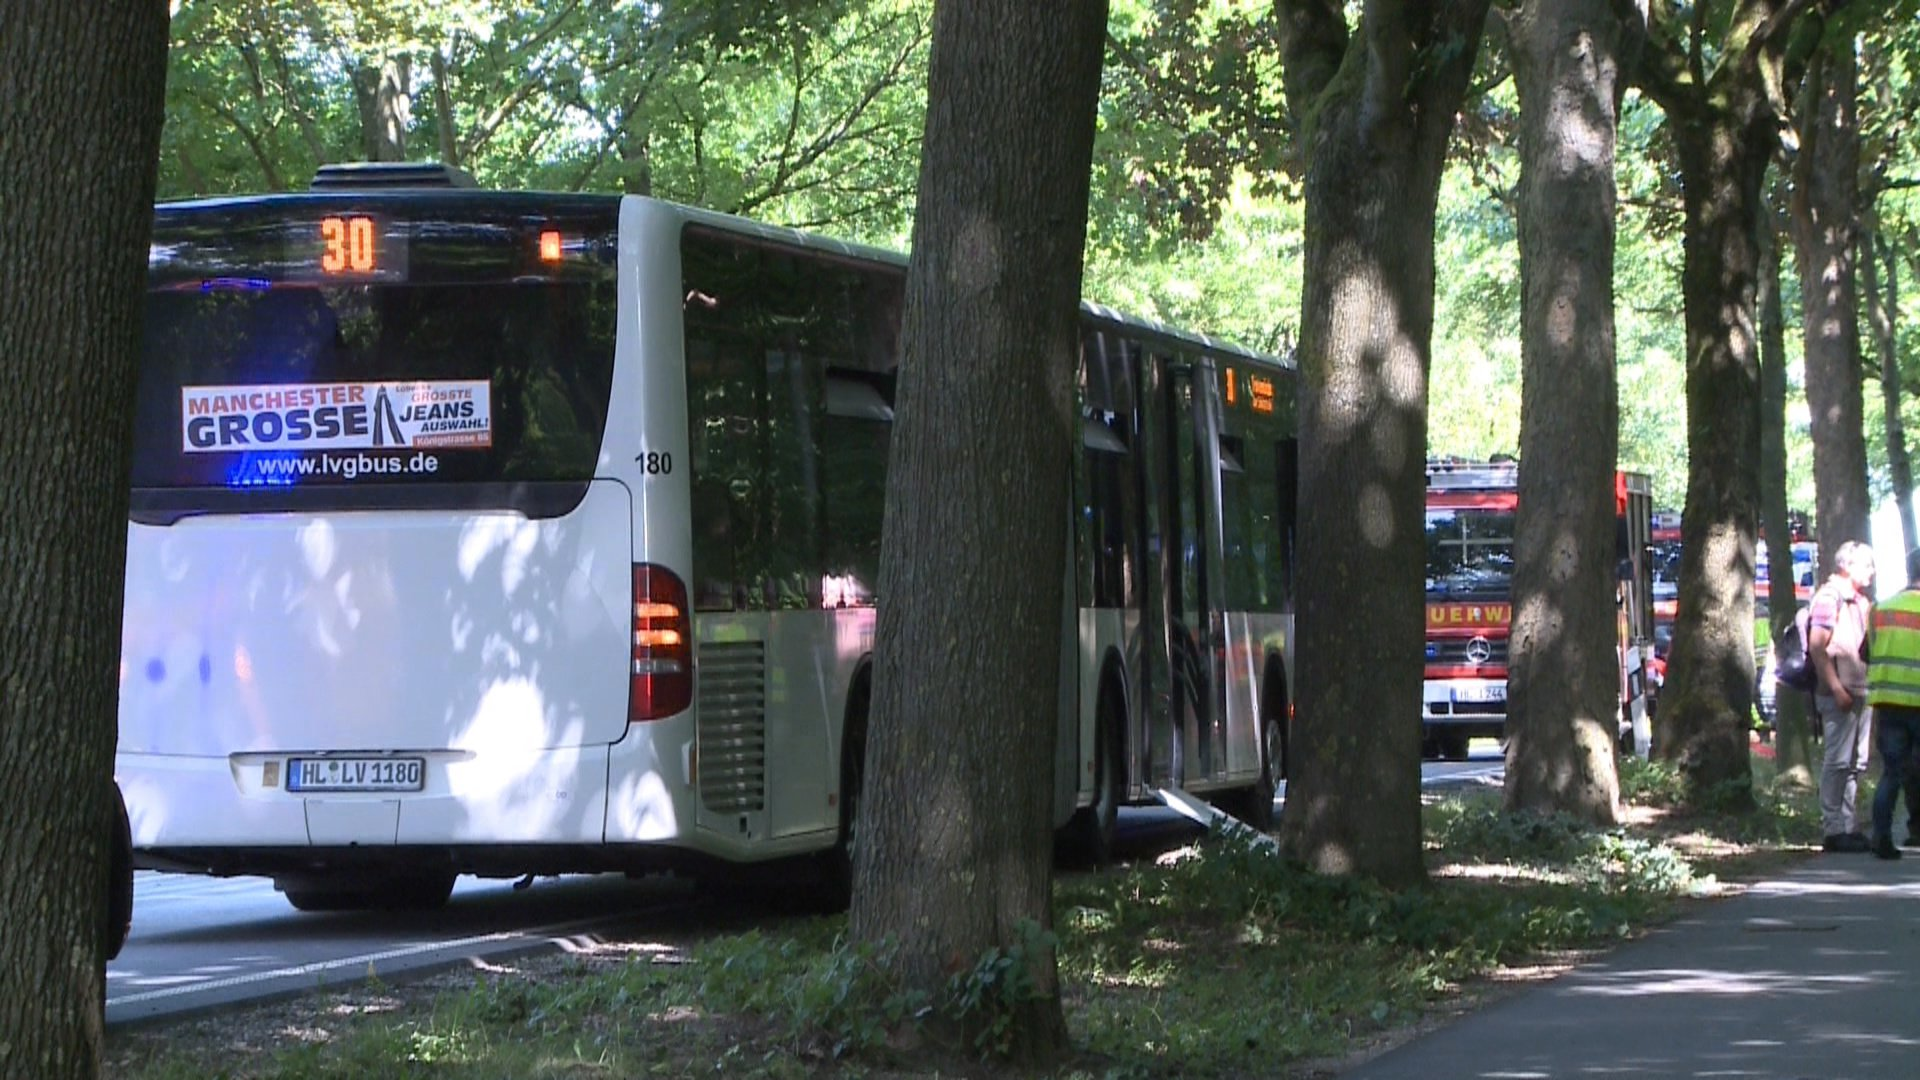 At least 14 injured in knife rampage on bus in Luebeck, Germany